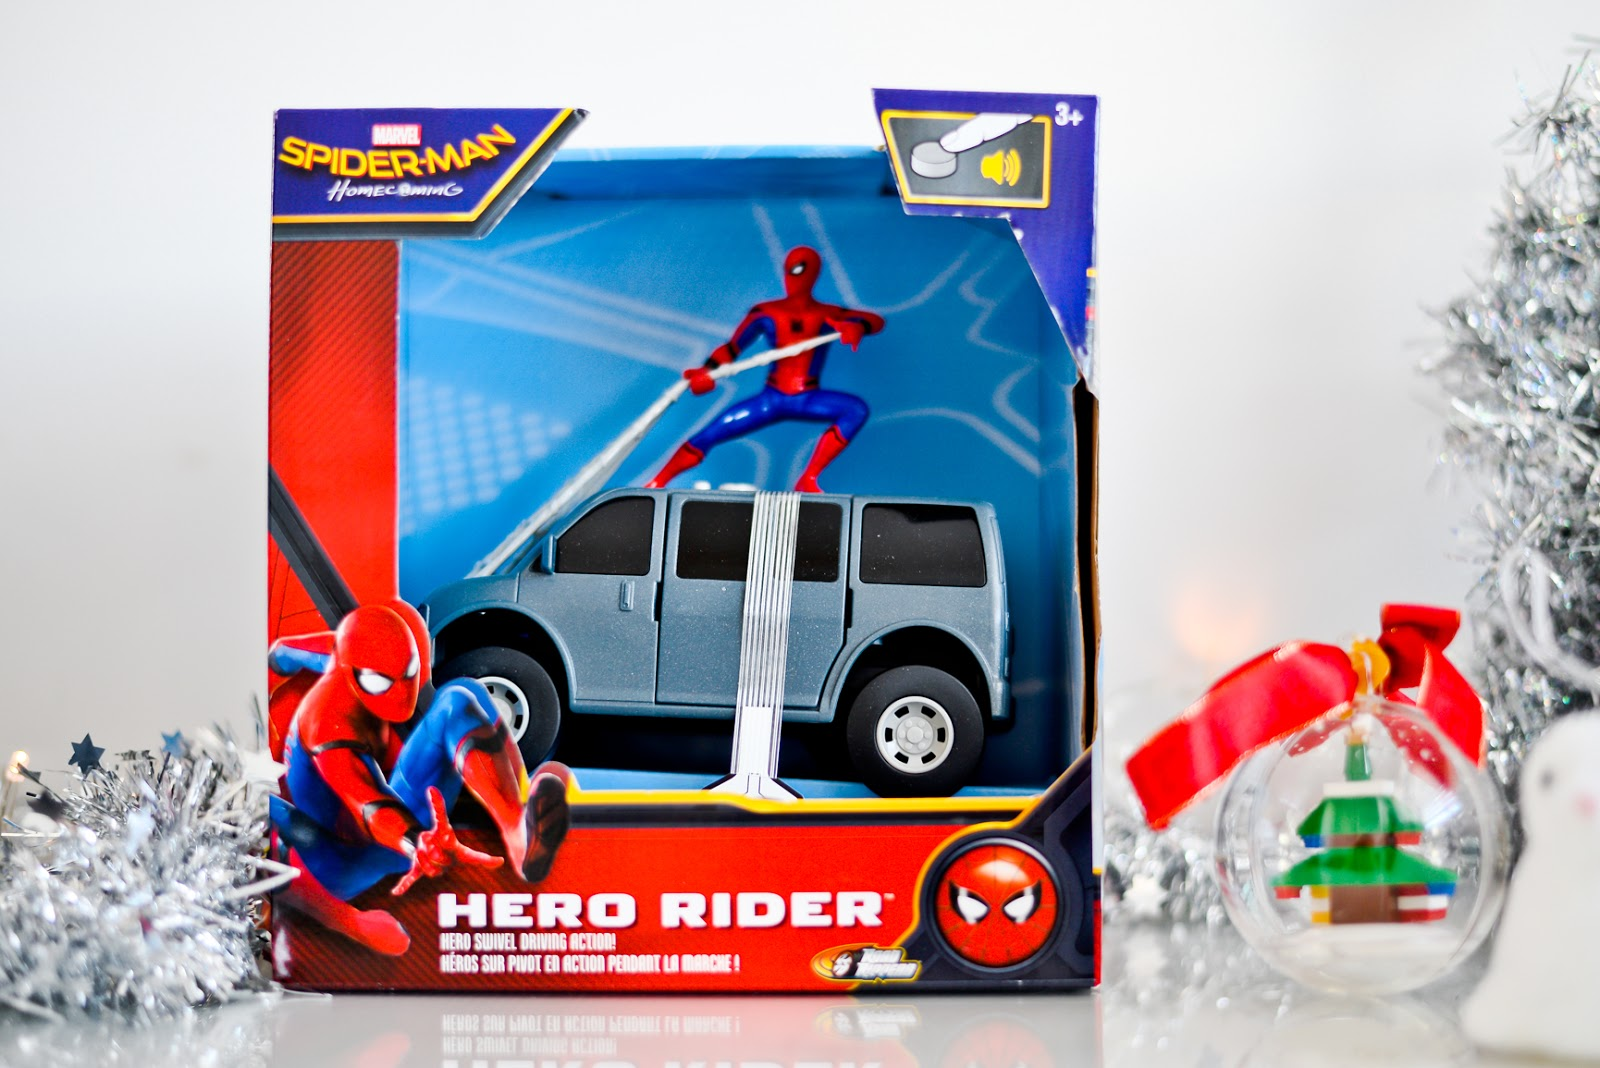 spider man hero rider